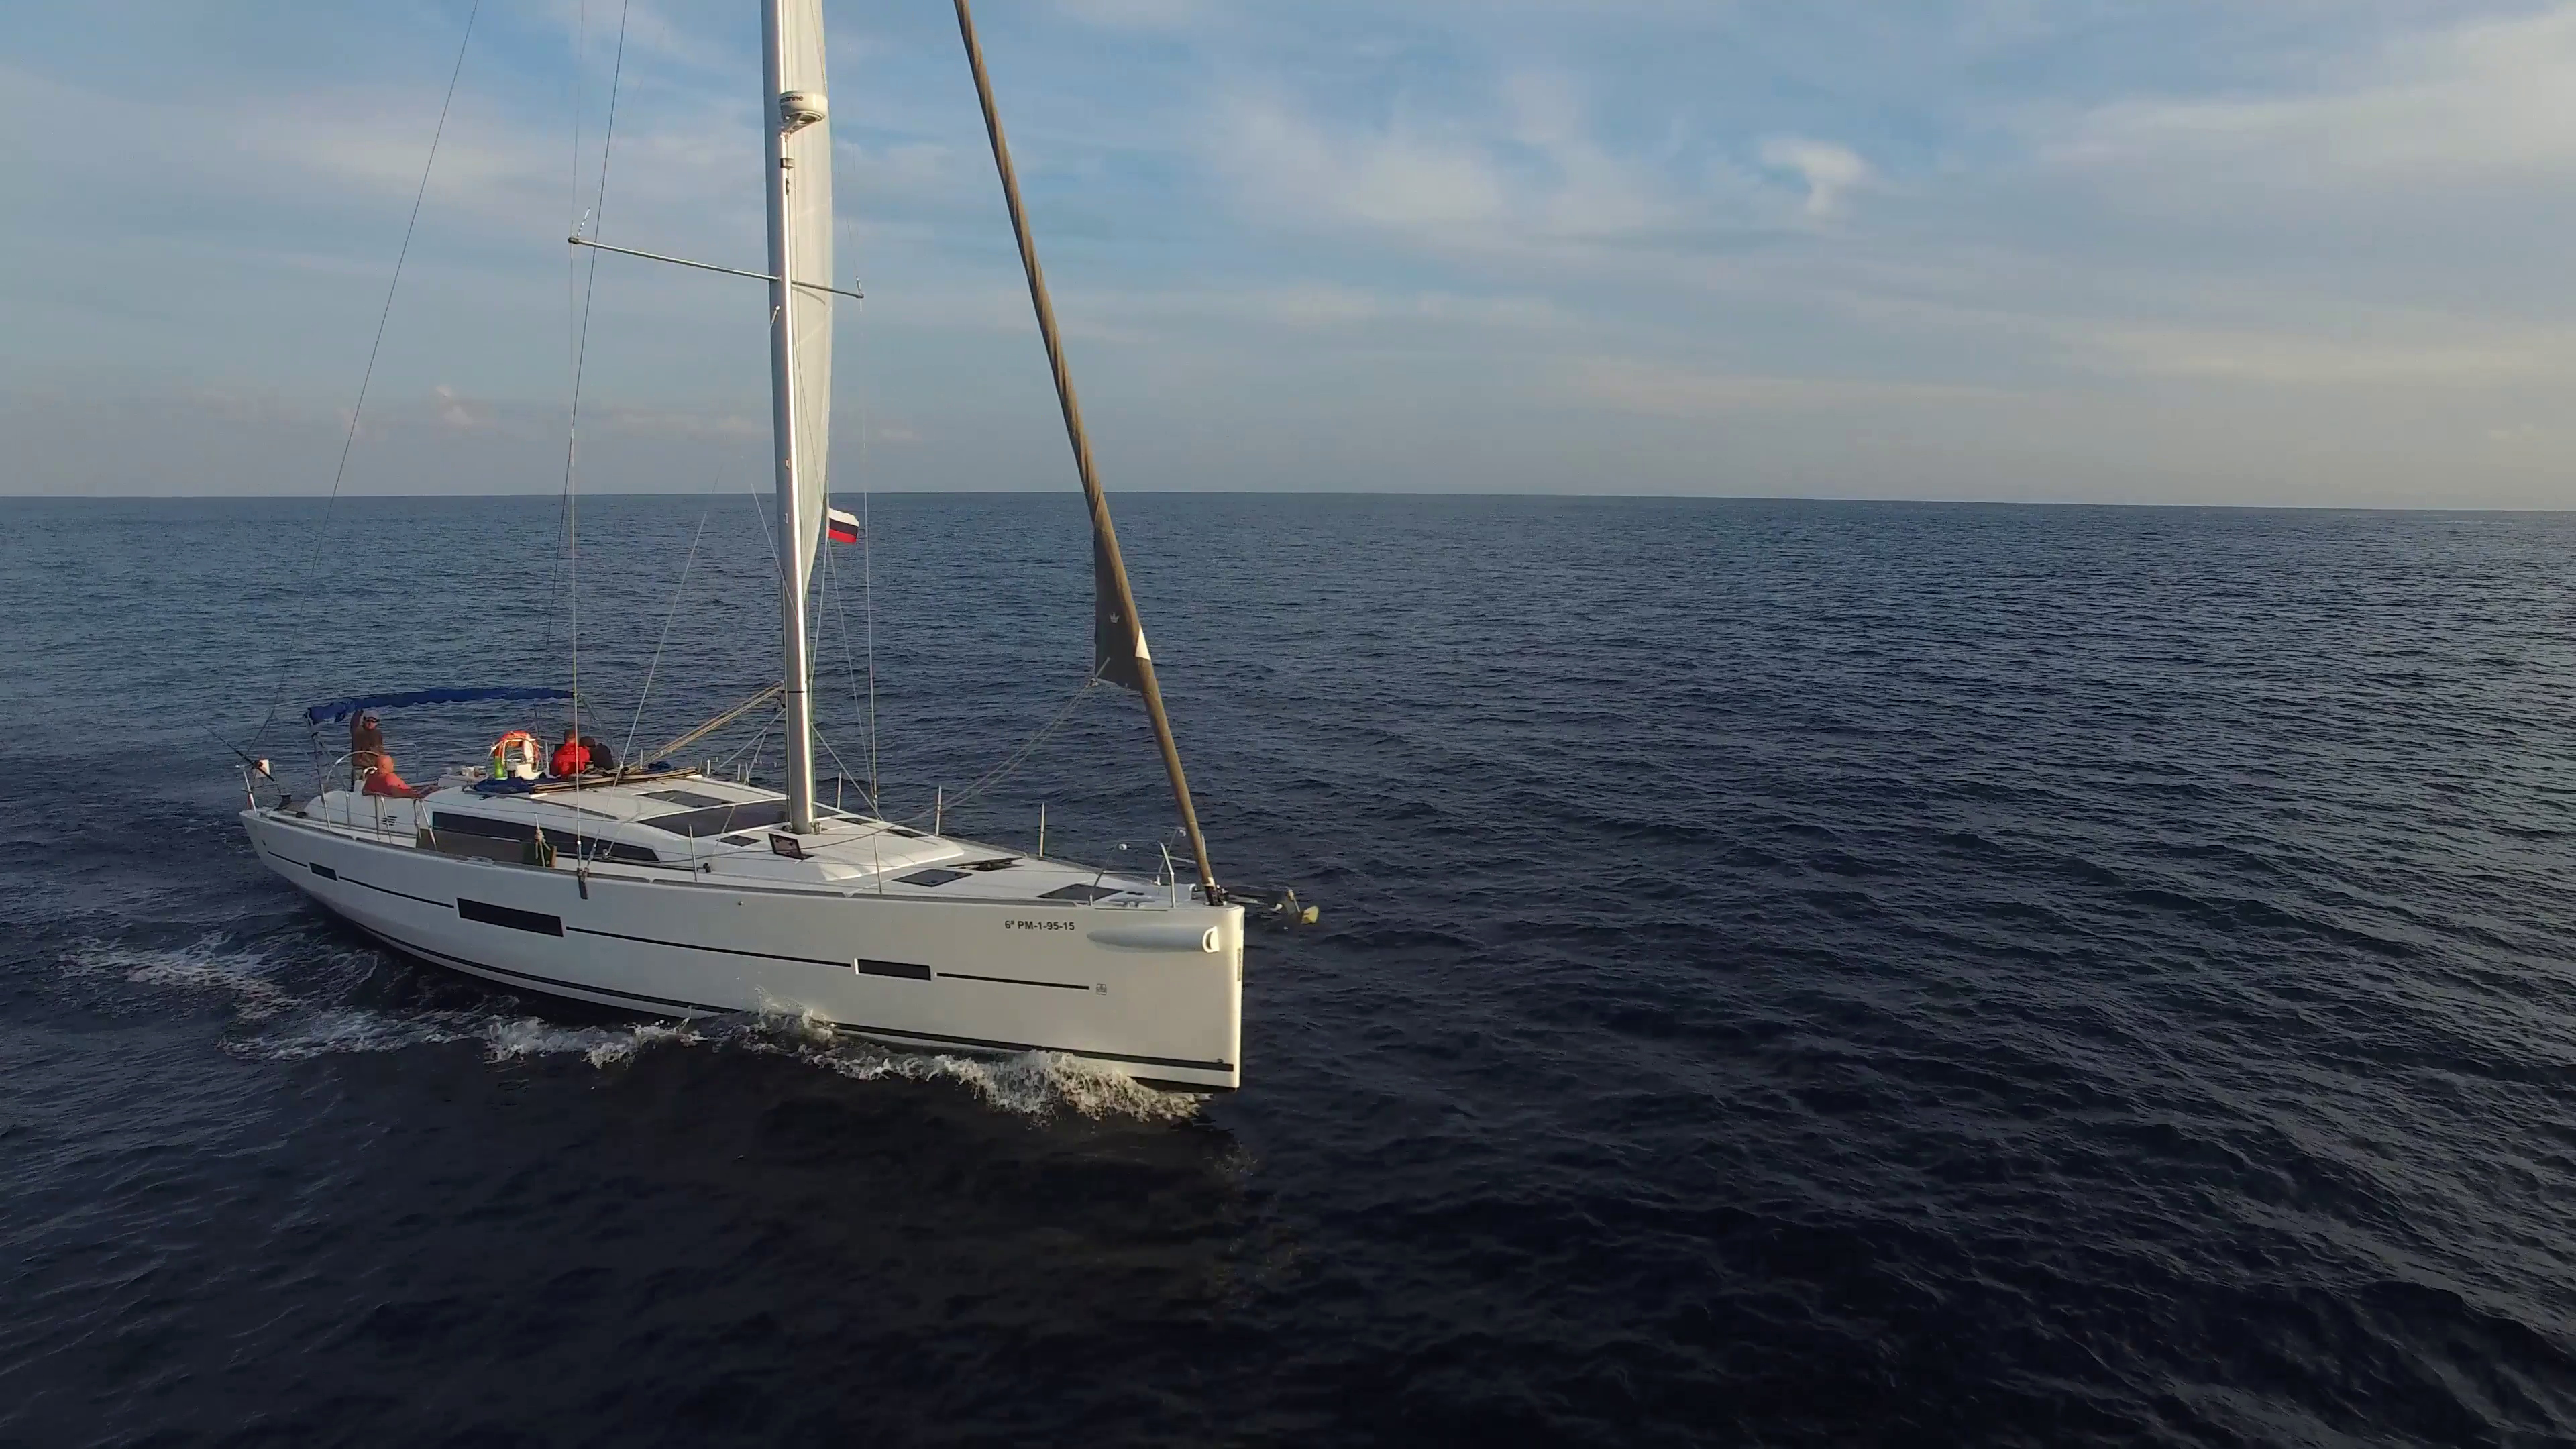 Phantom Stock Agreement Template Luxury Sailing Yacht In the Ocean Aerial View Stock Video